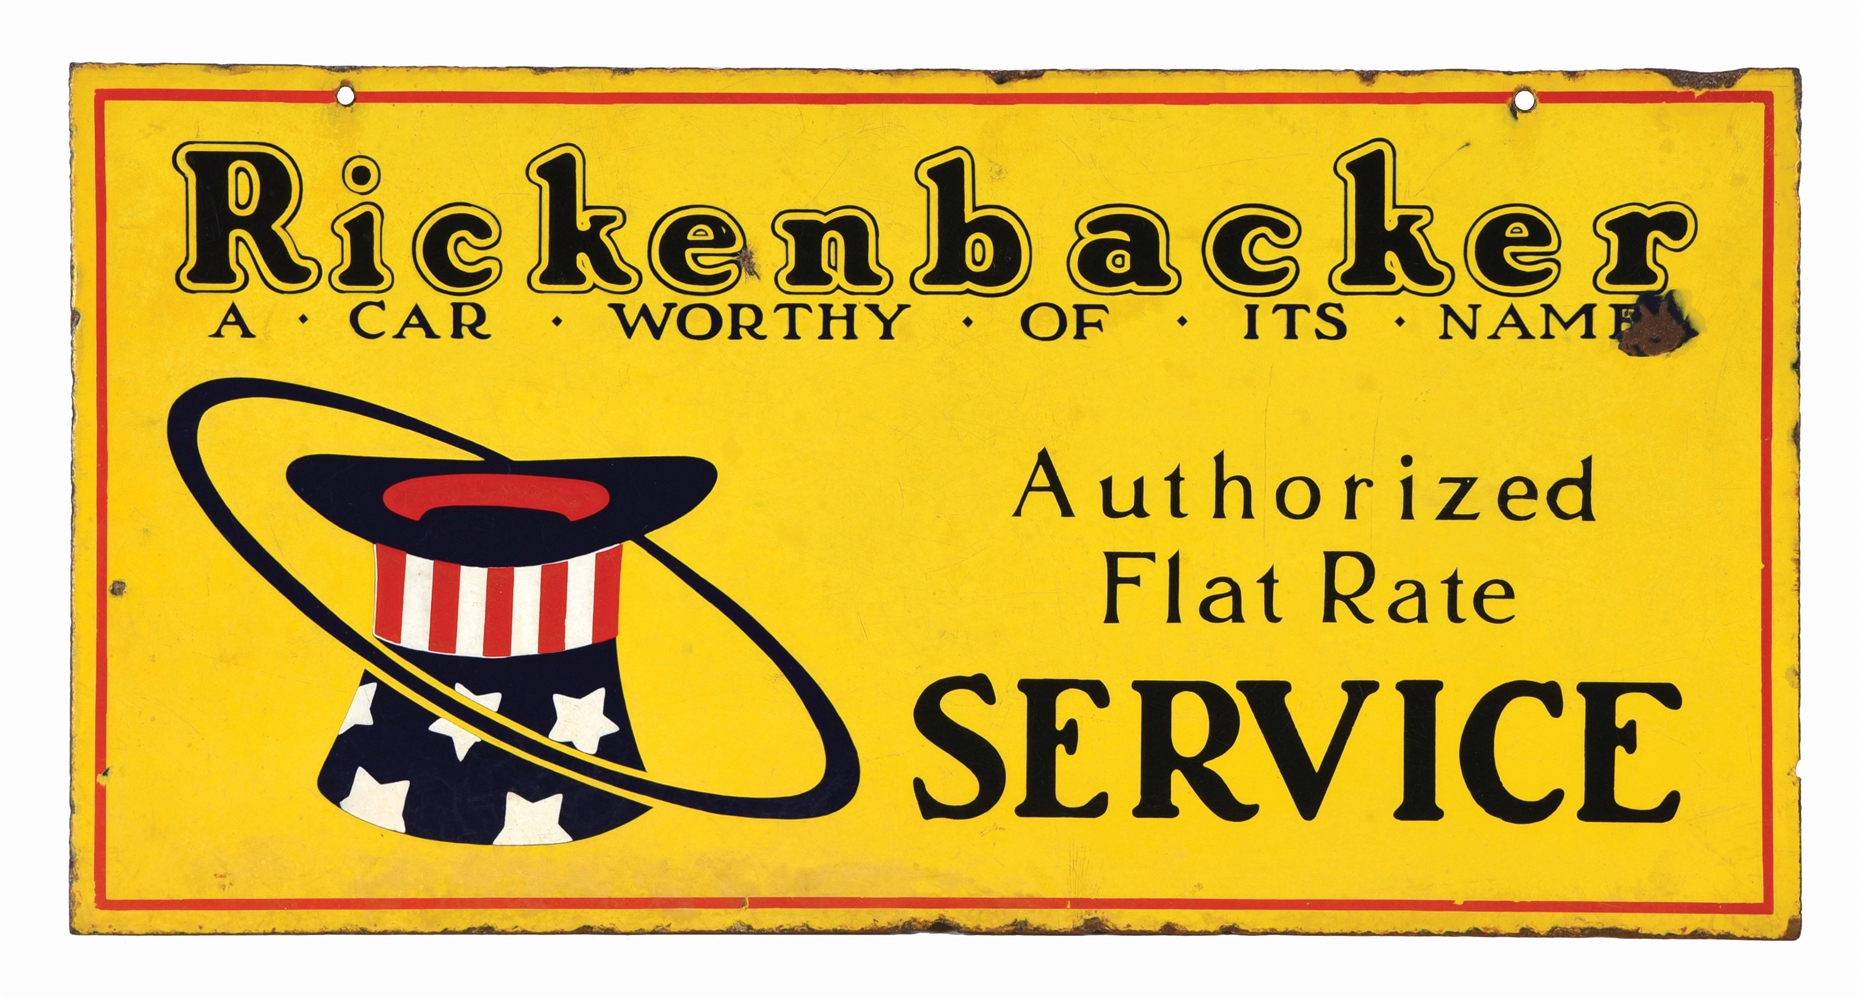 RICKENBACKER AUTOMOBILES AUTHORIZED SERVICE PORCELAIN SIGN W/ HAT GRAPHIC.